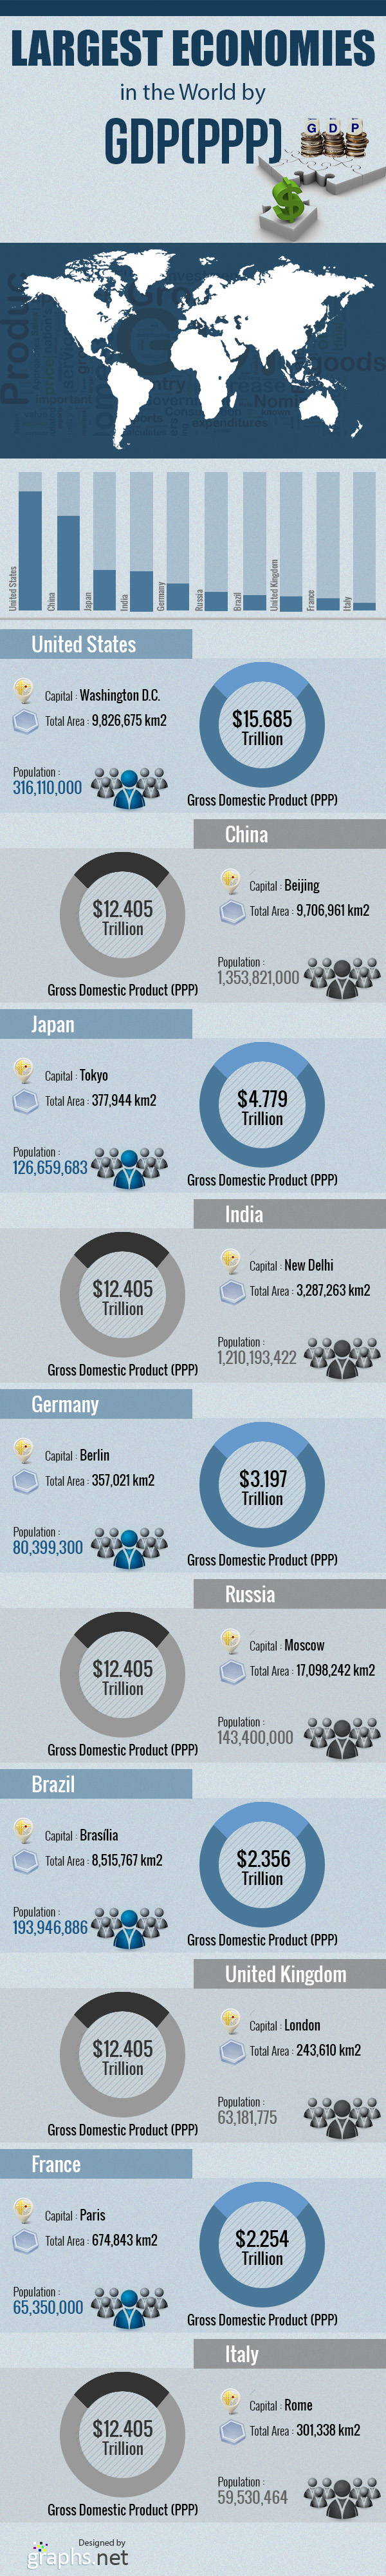 Largest Economies in the World by GDP (PPP)